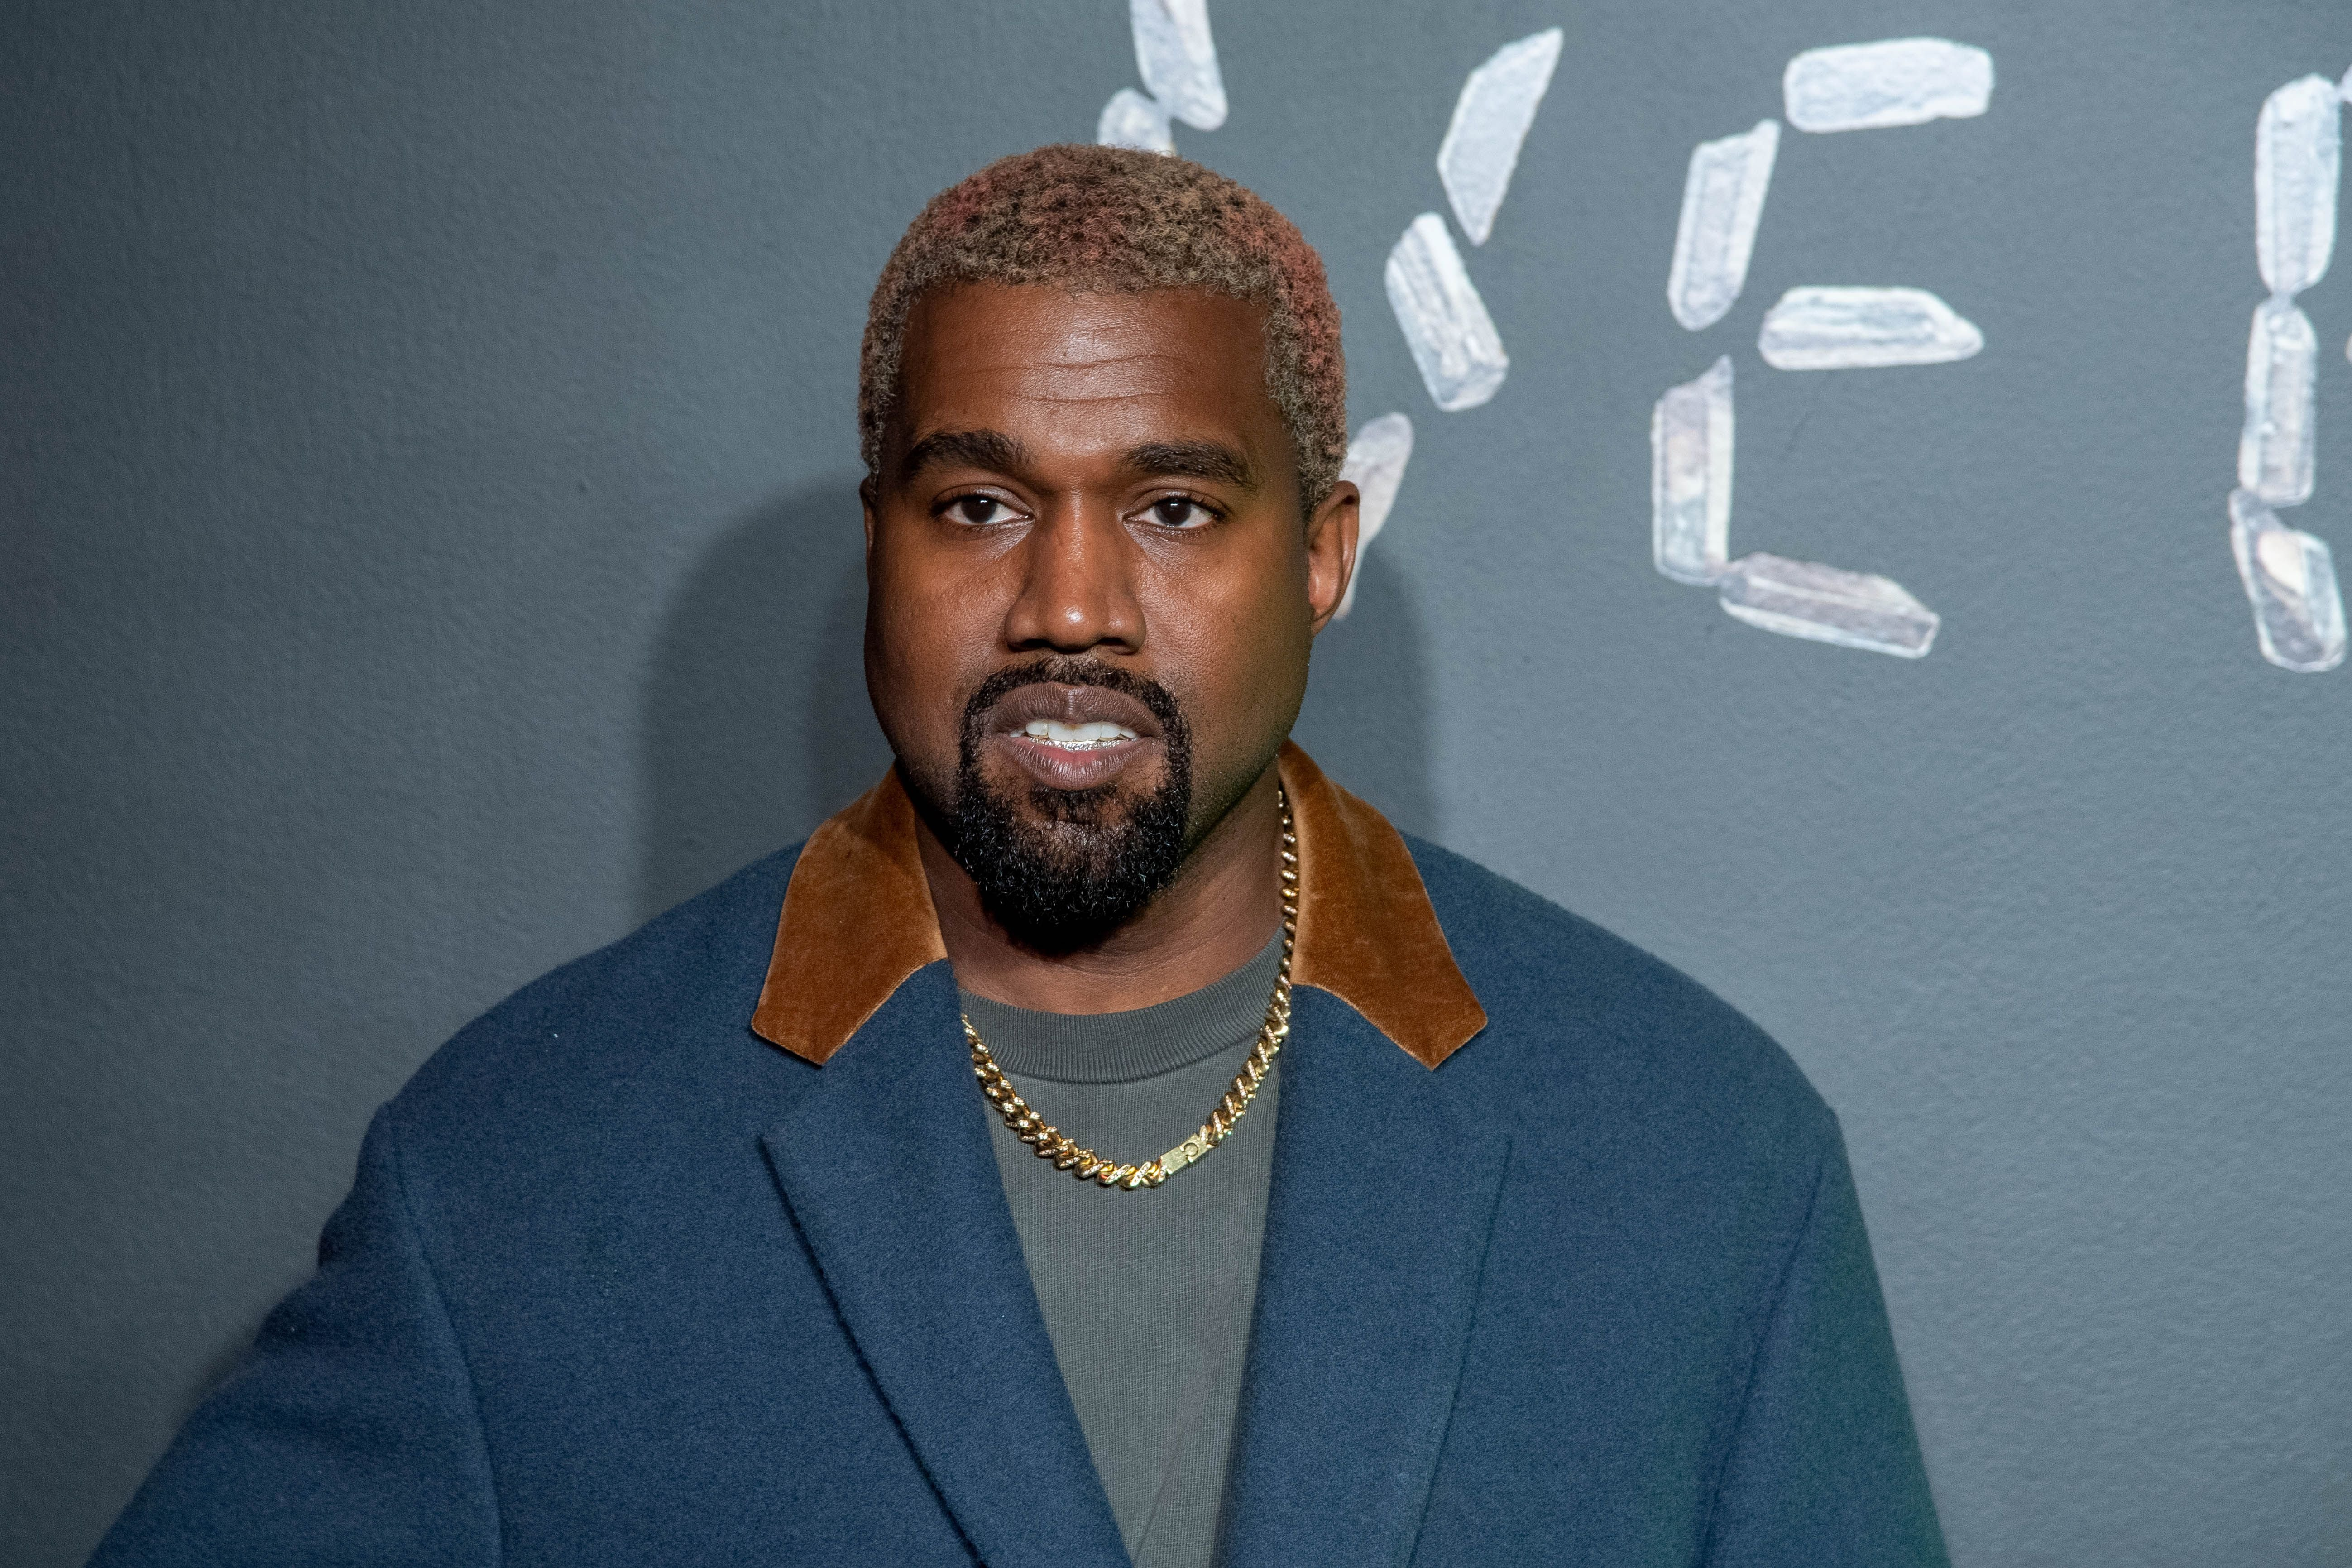 Kanye West at the December 2018 Versace fashion show in New York | Source:Getty Images